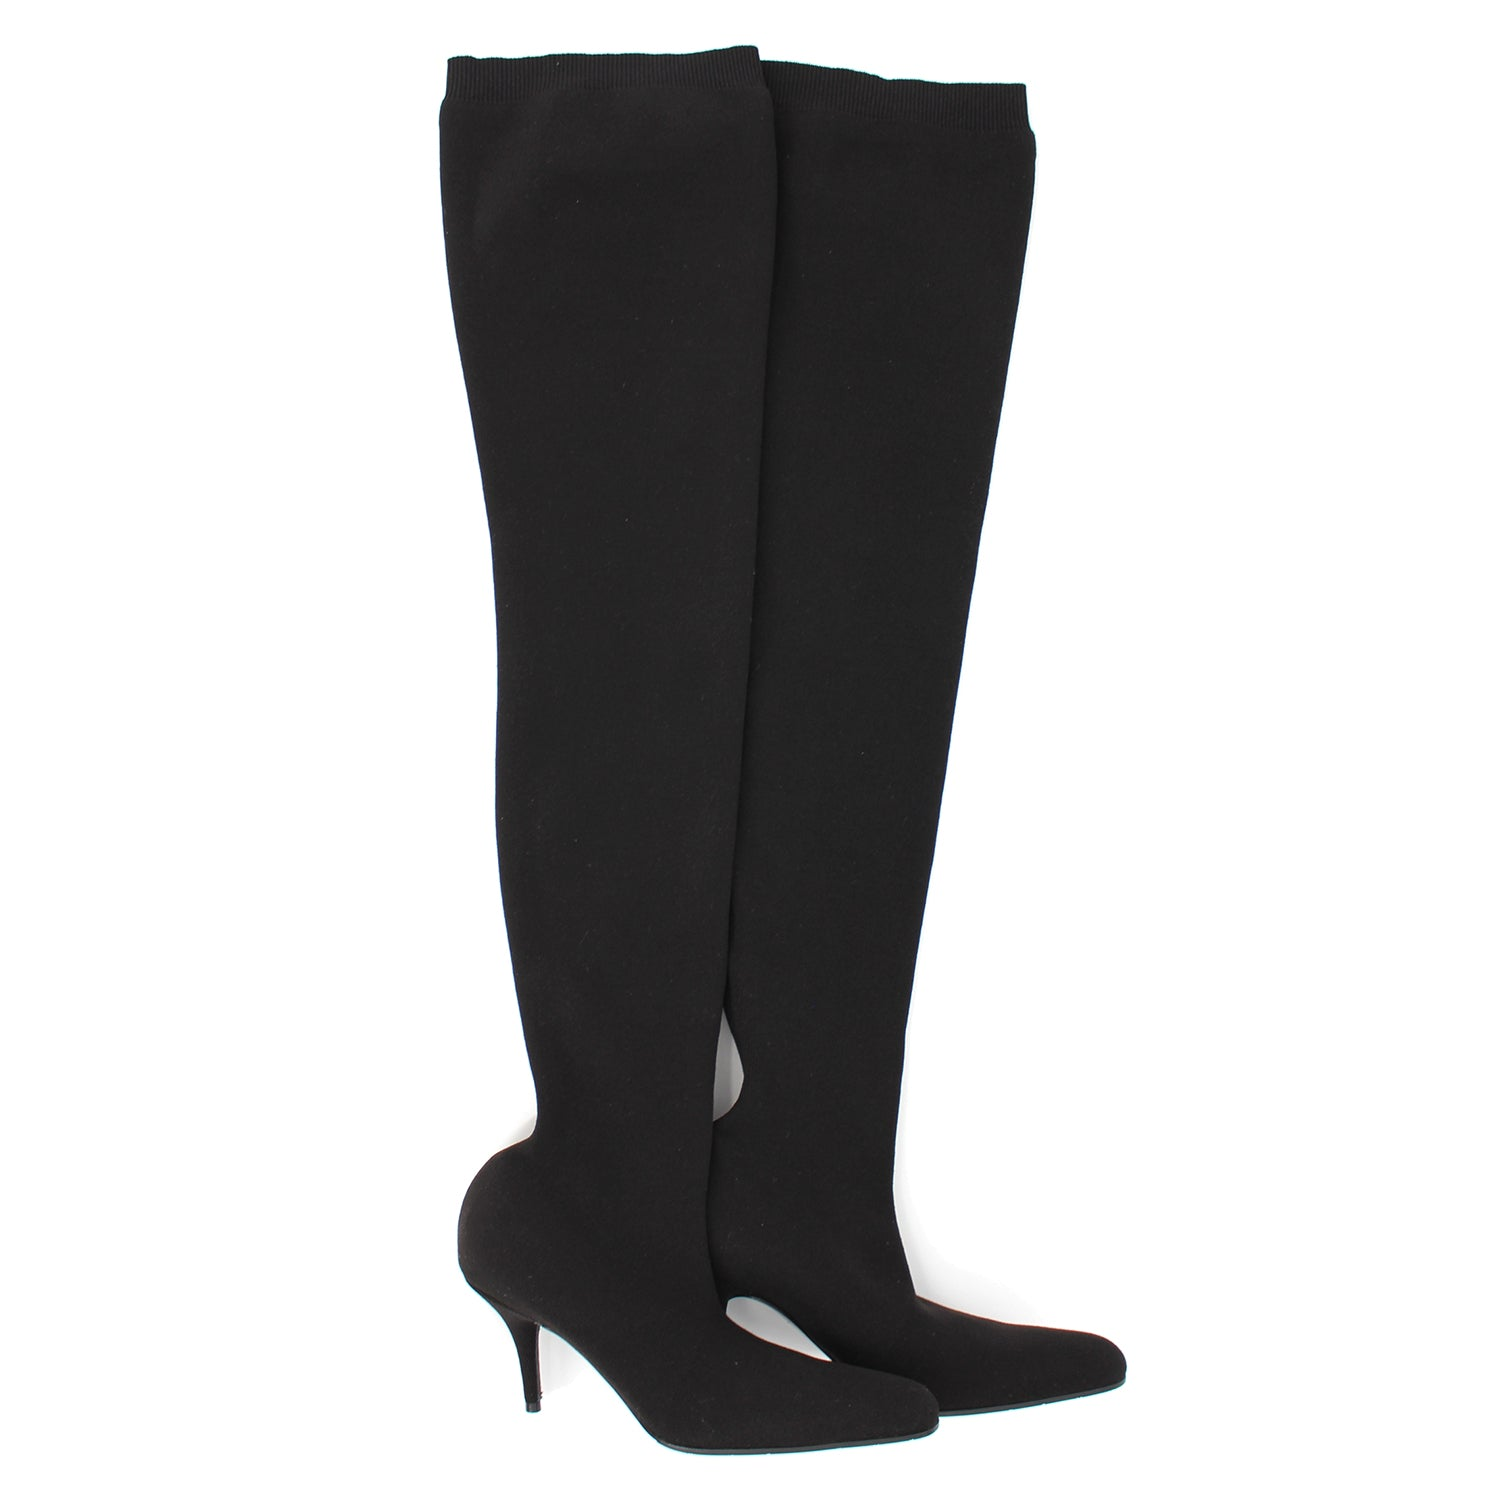 NEW Balenciaga Black Over The Knee Socks Boots 37